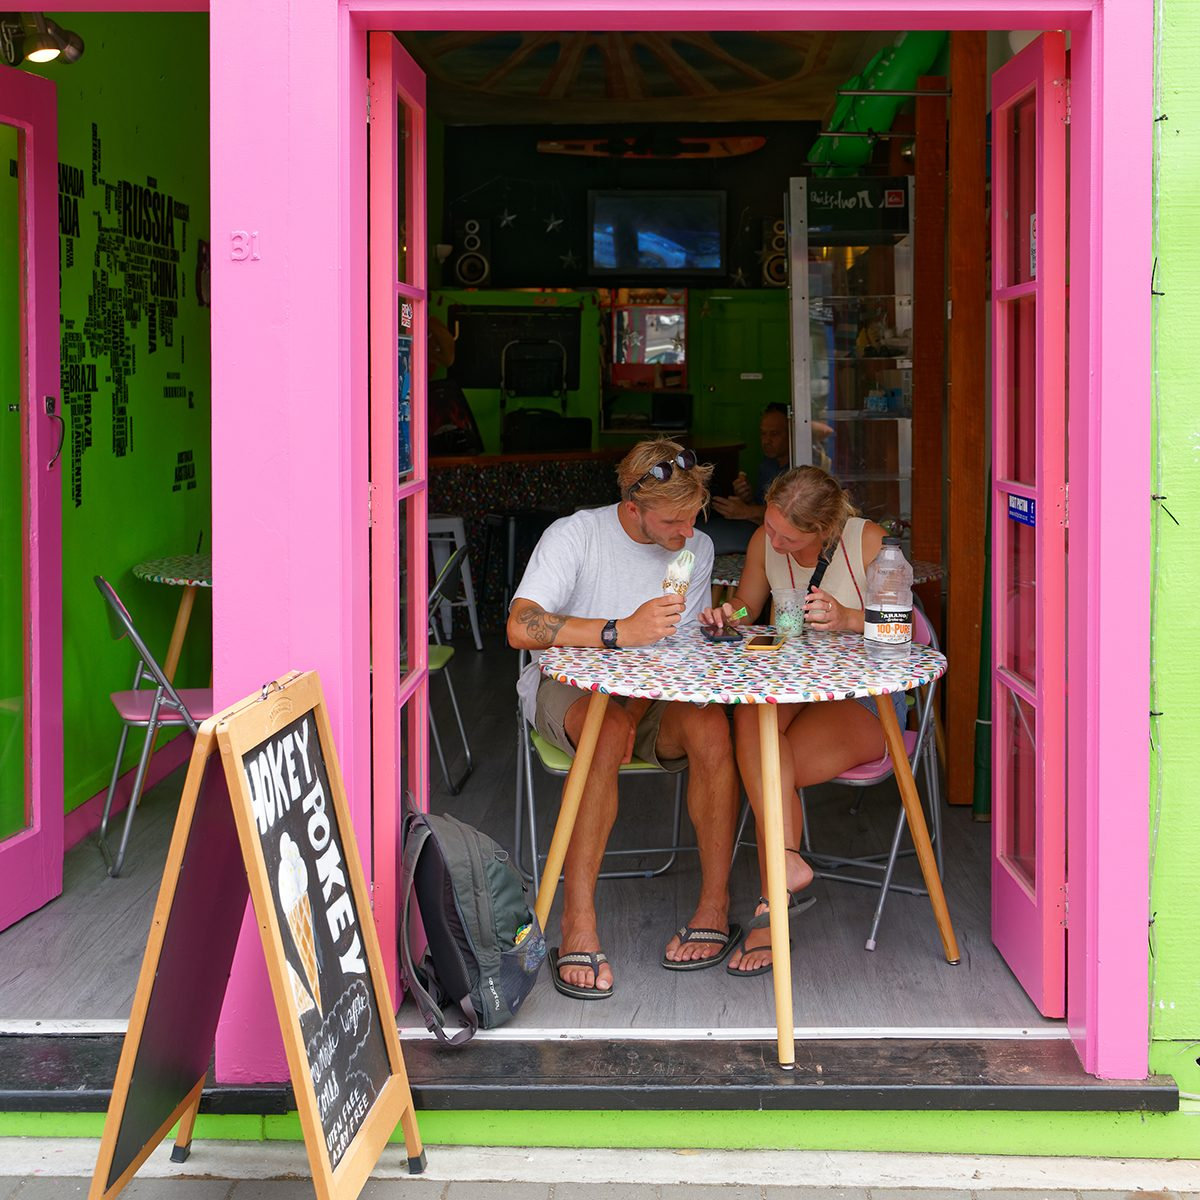 Picton, Marlborough Sounds/New Zealand - February 1, 2020: Tourists eating ice creams engrossed with their cellphones in an ice cream shop in Picton, Marlborough Sounds, New Zealand.